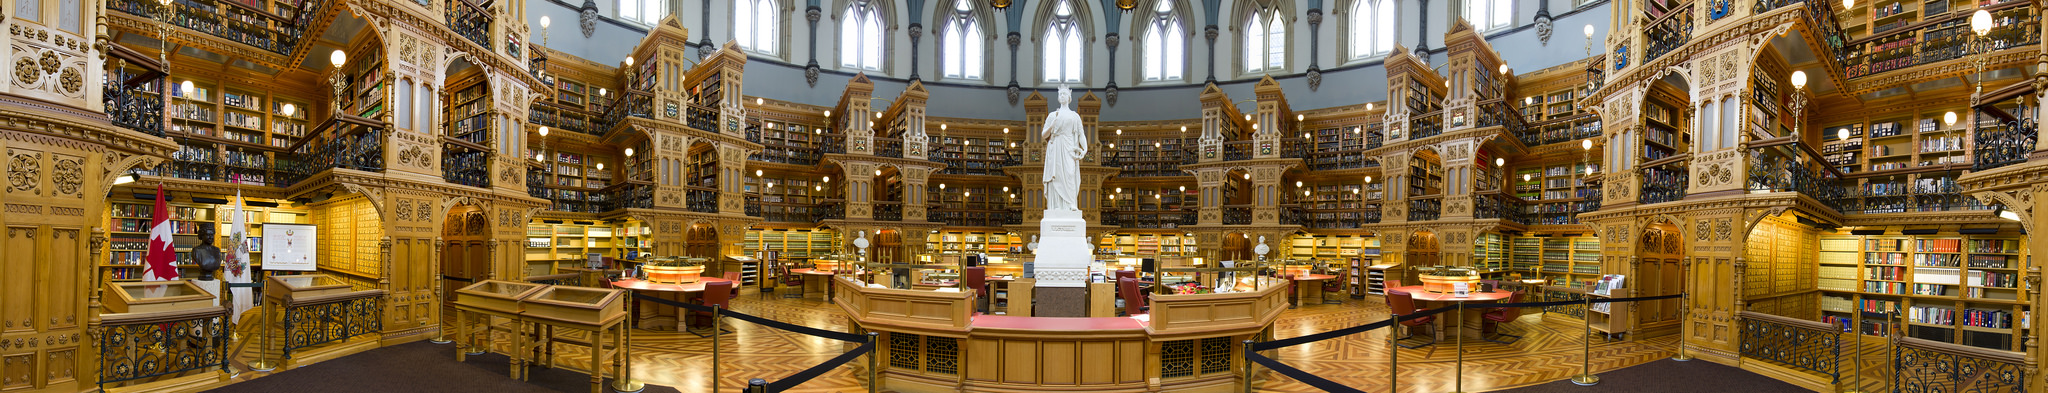 View enlarged image of the Library's statue of Queen Victoria